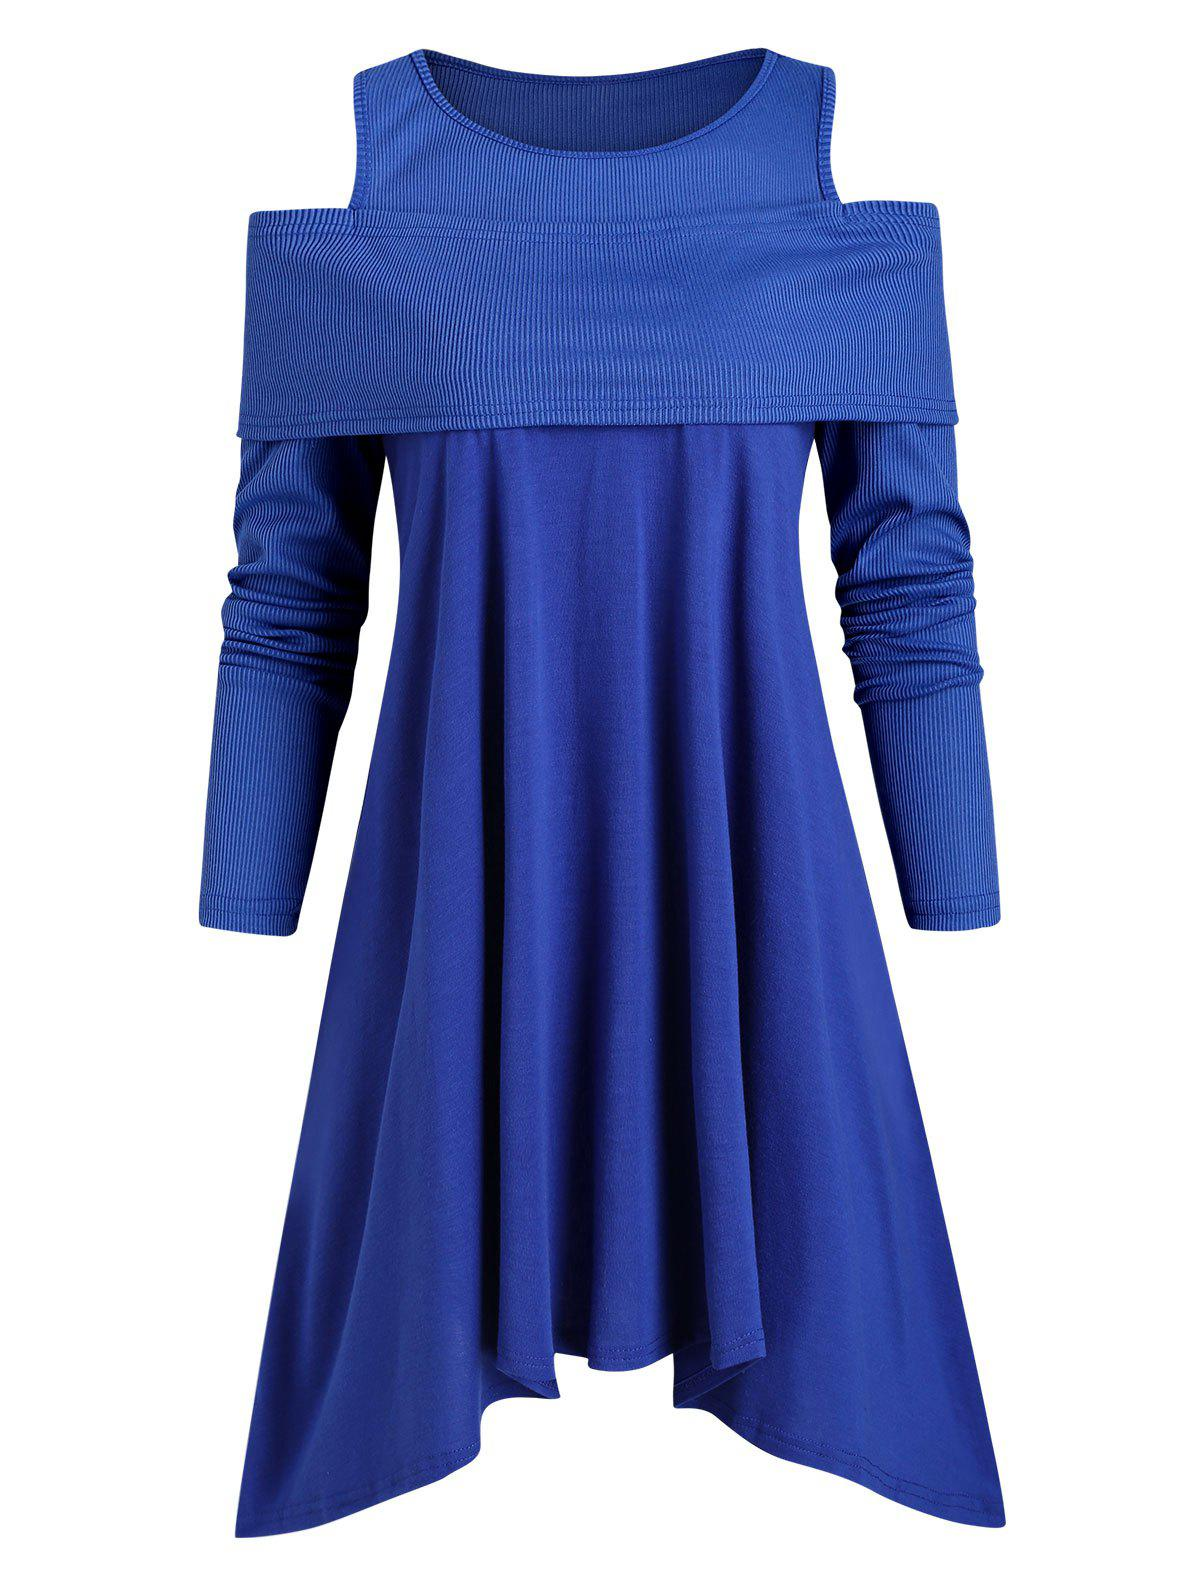 Ribbed Panel Jersey Cold Shoulder Asymmetrical Tunic Top - BLUE M